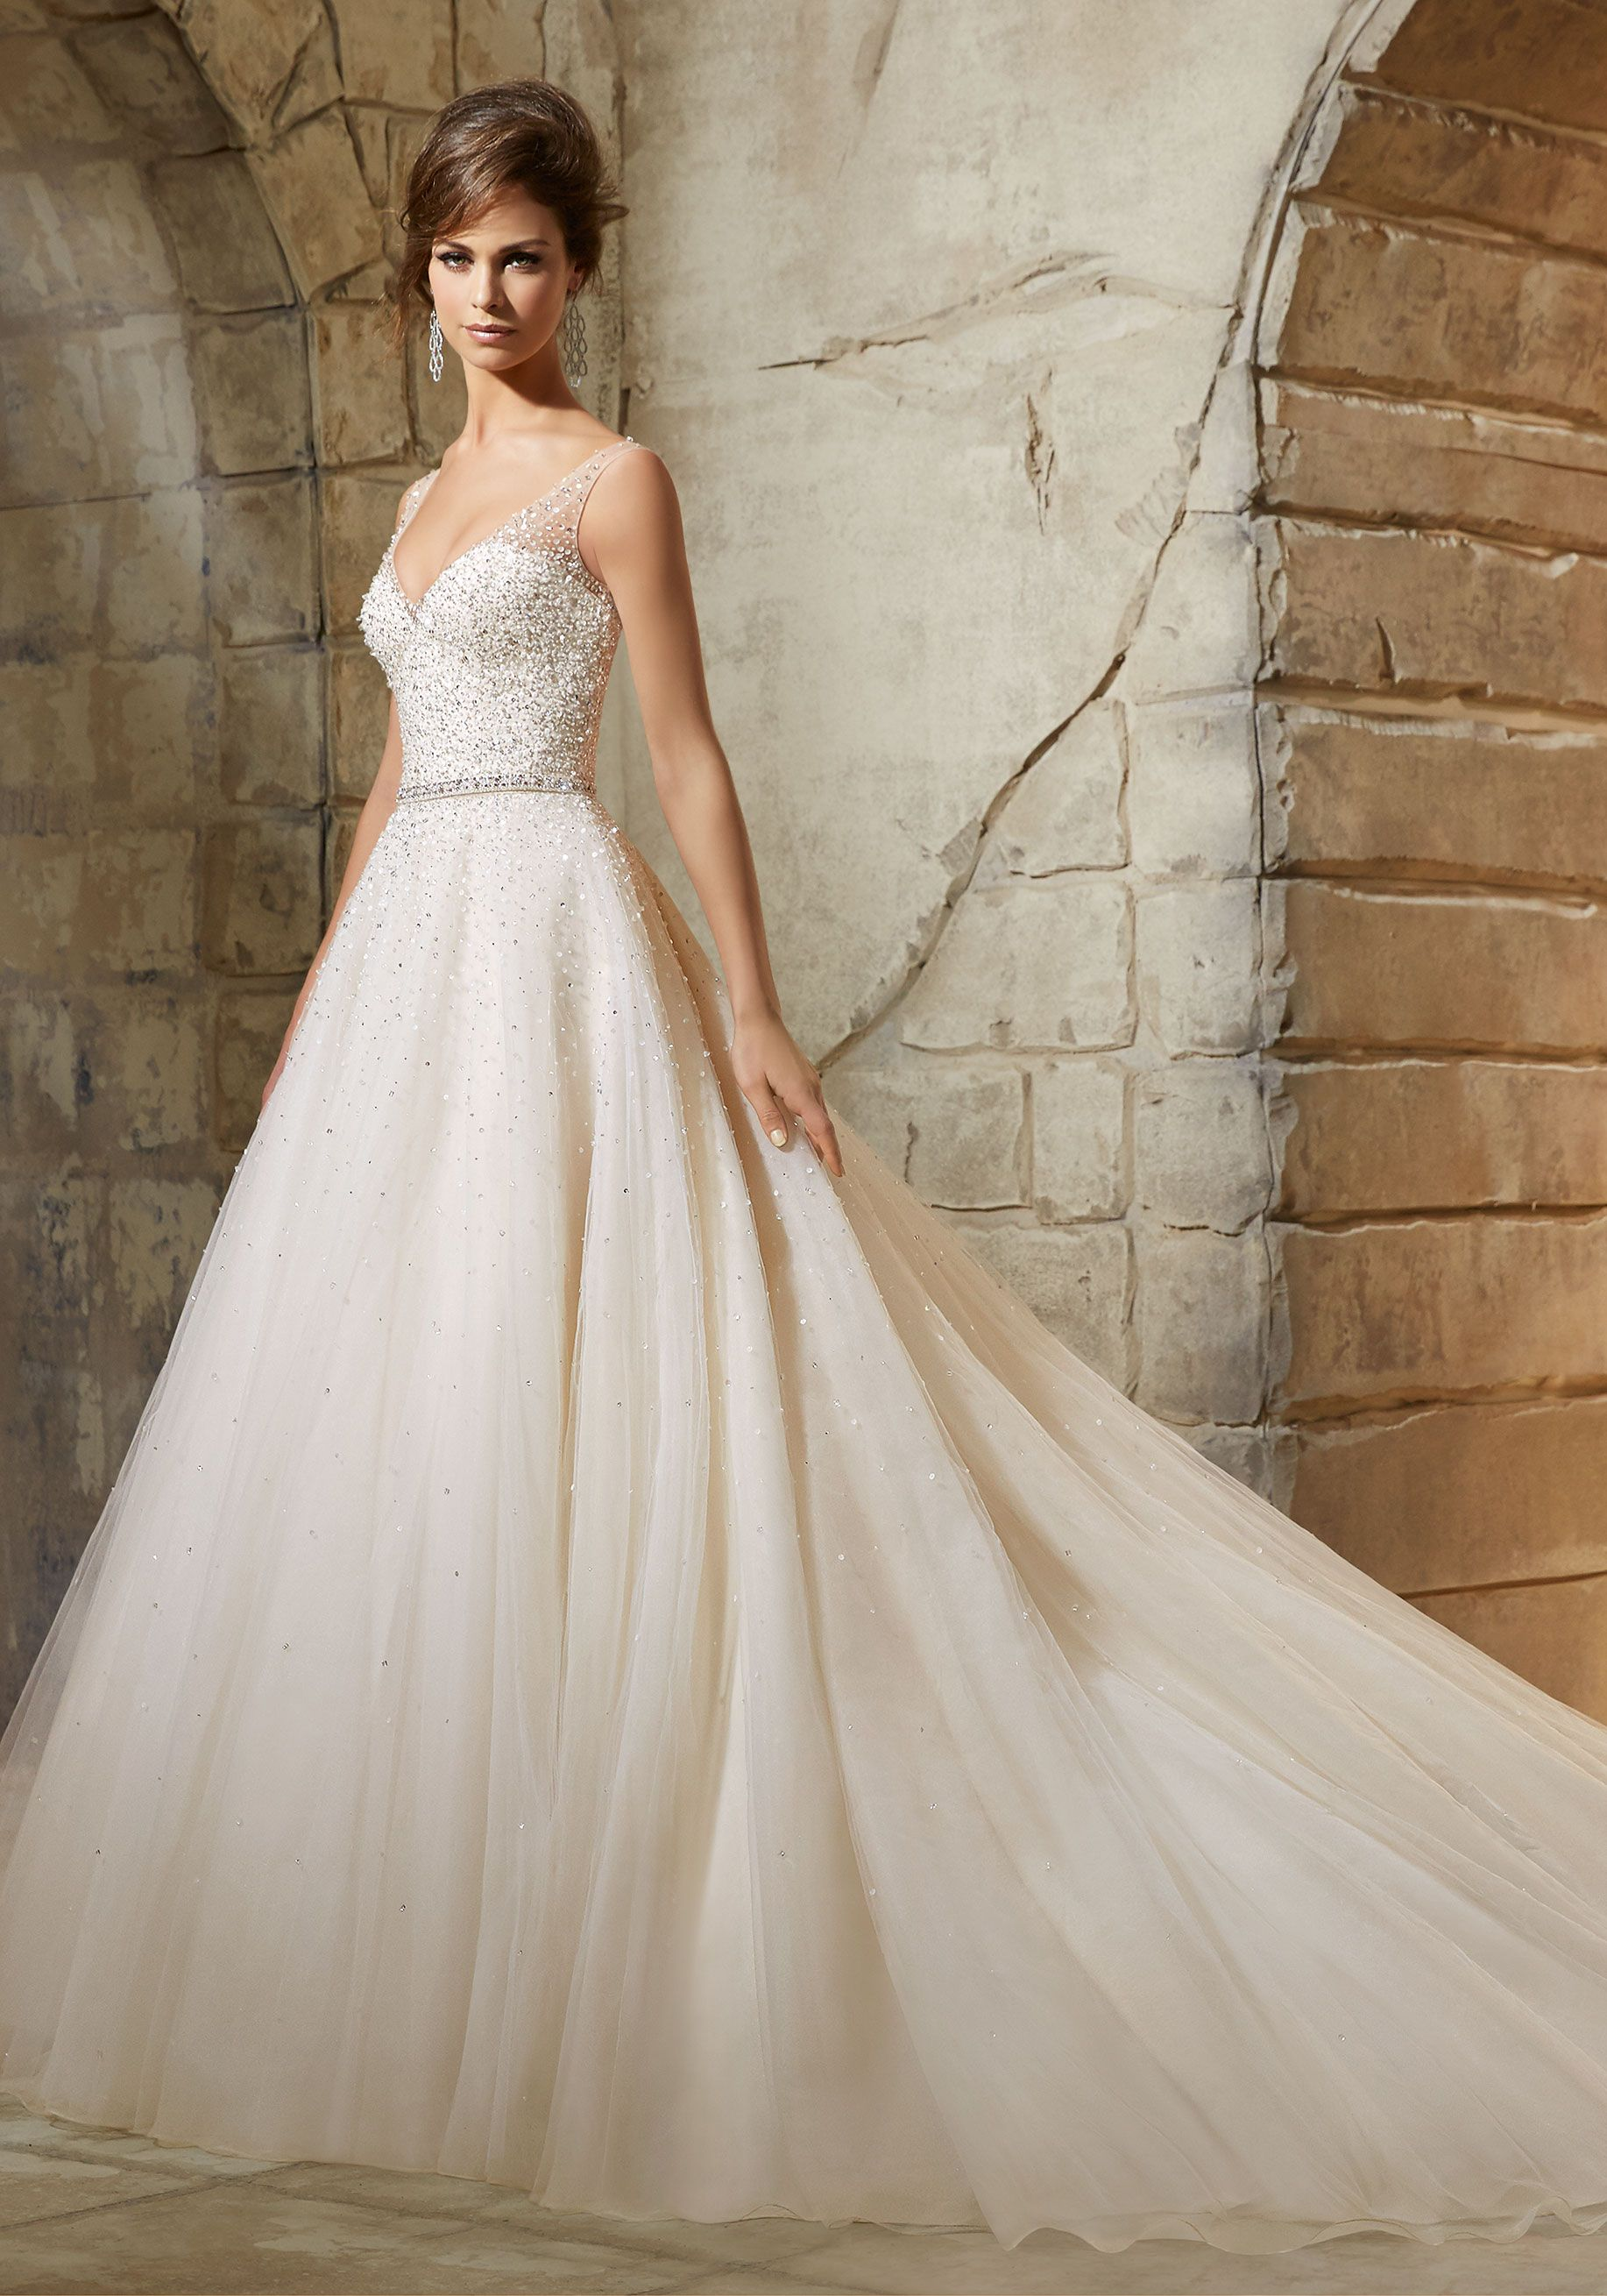 Aline bridal dress with crystal beading and sheer vneckline and